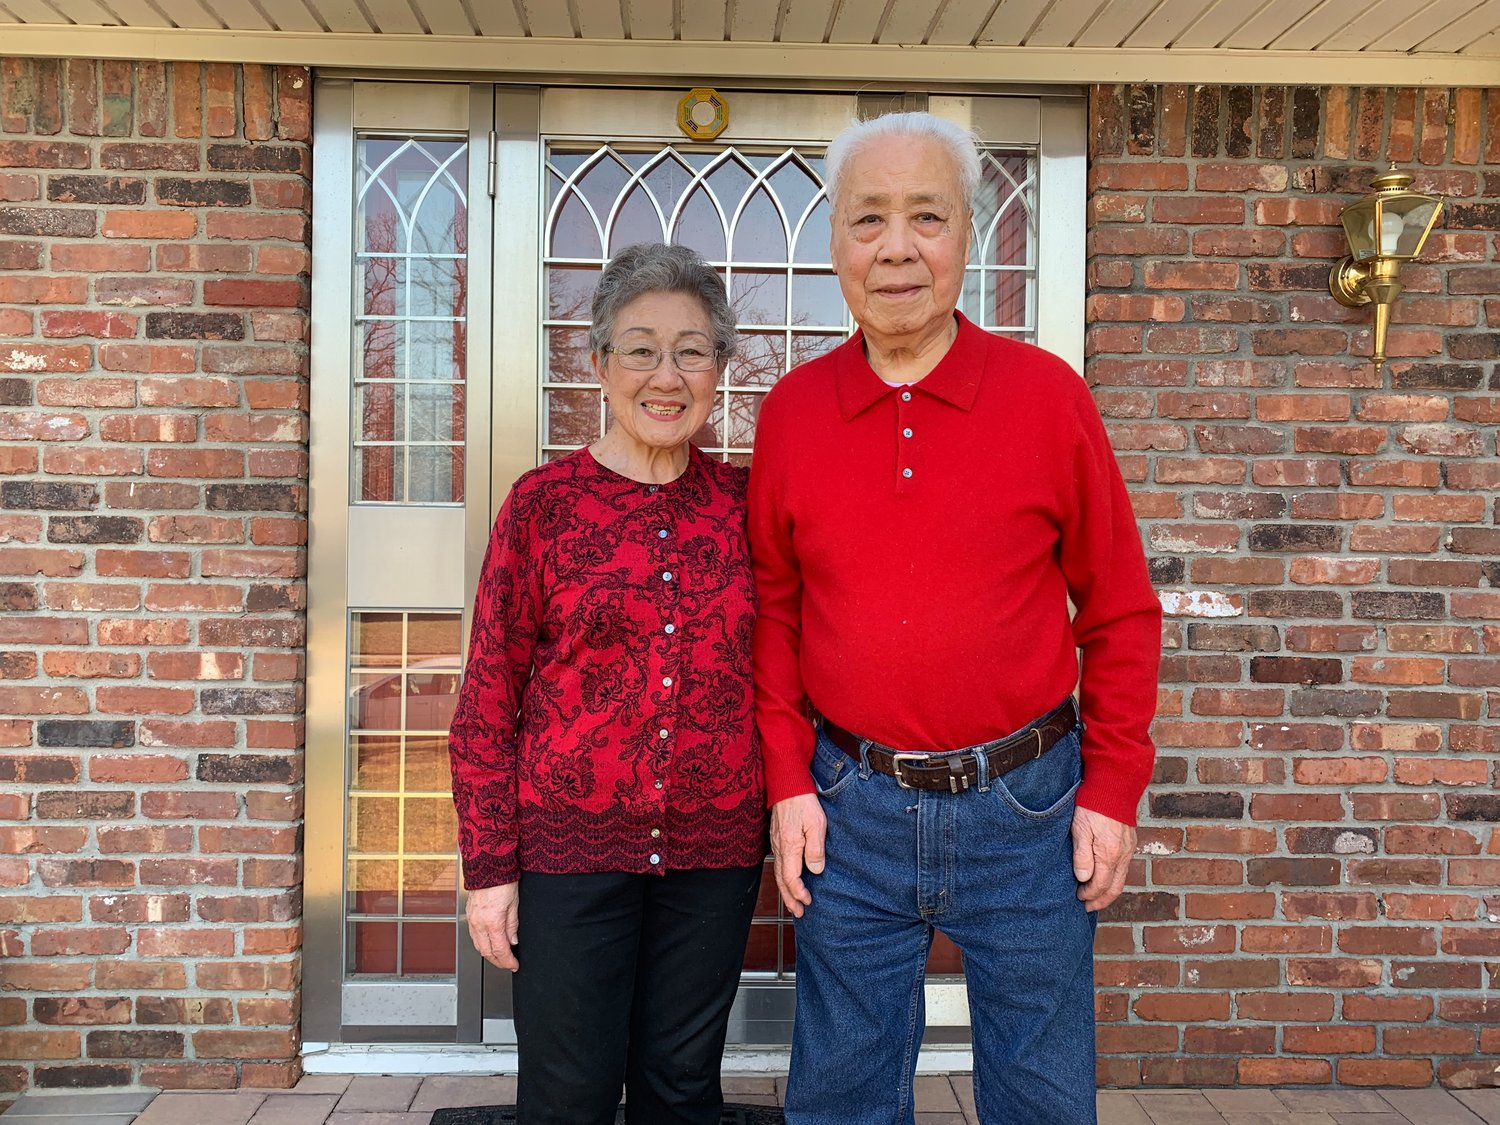 Ruth and Kam Yuen met in Taiwan after fleeing from communist China in the 1950s.